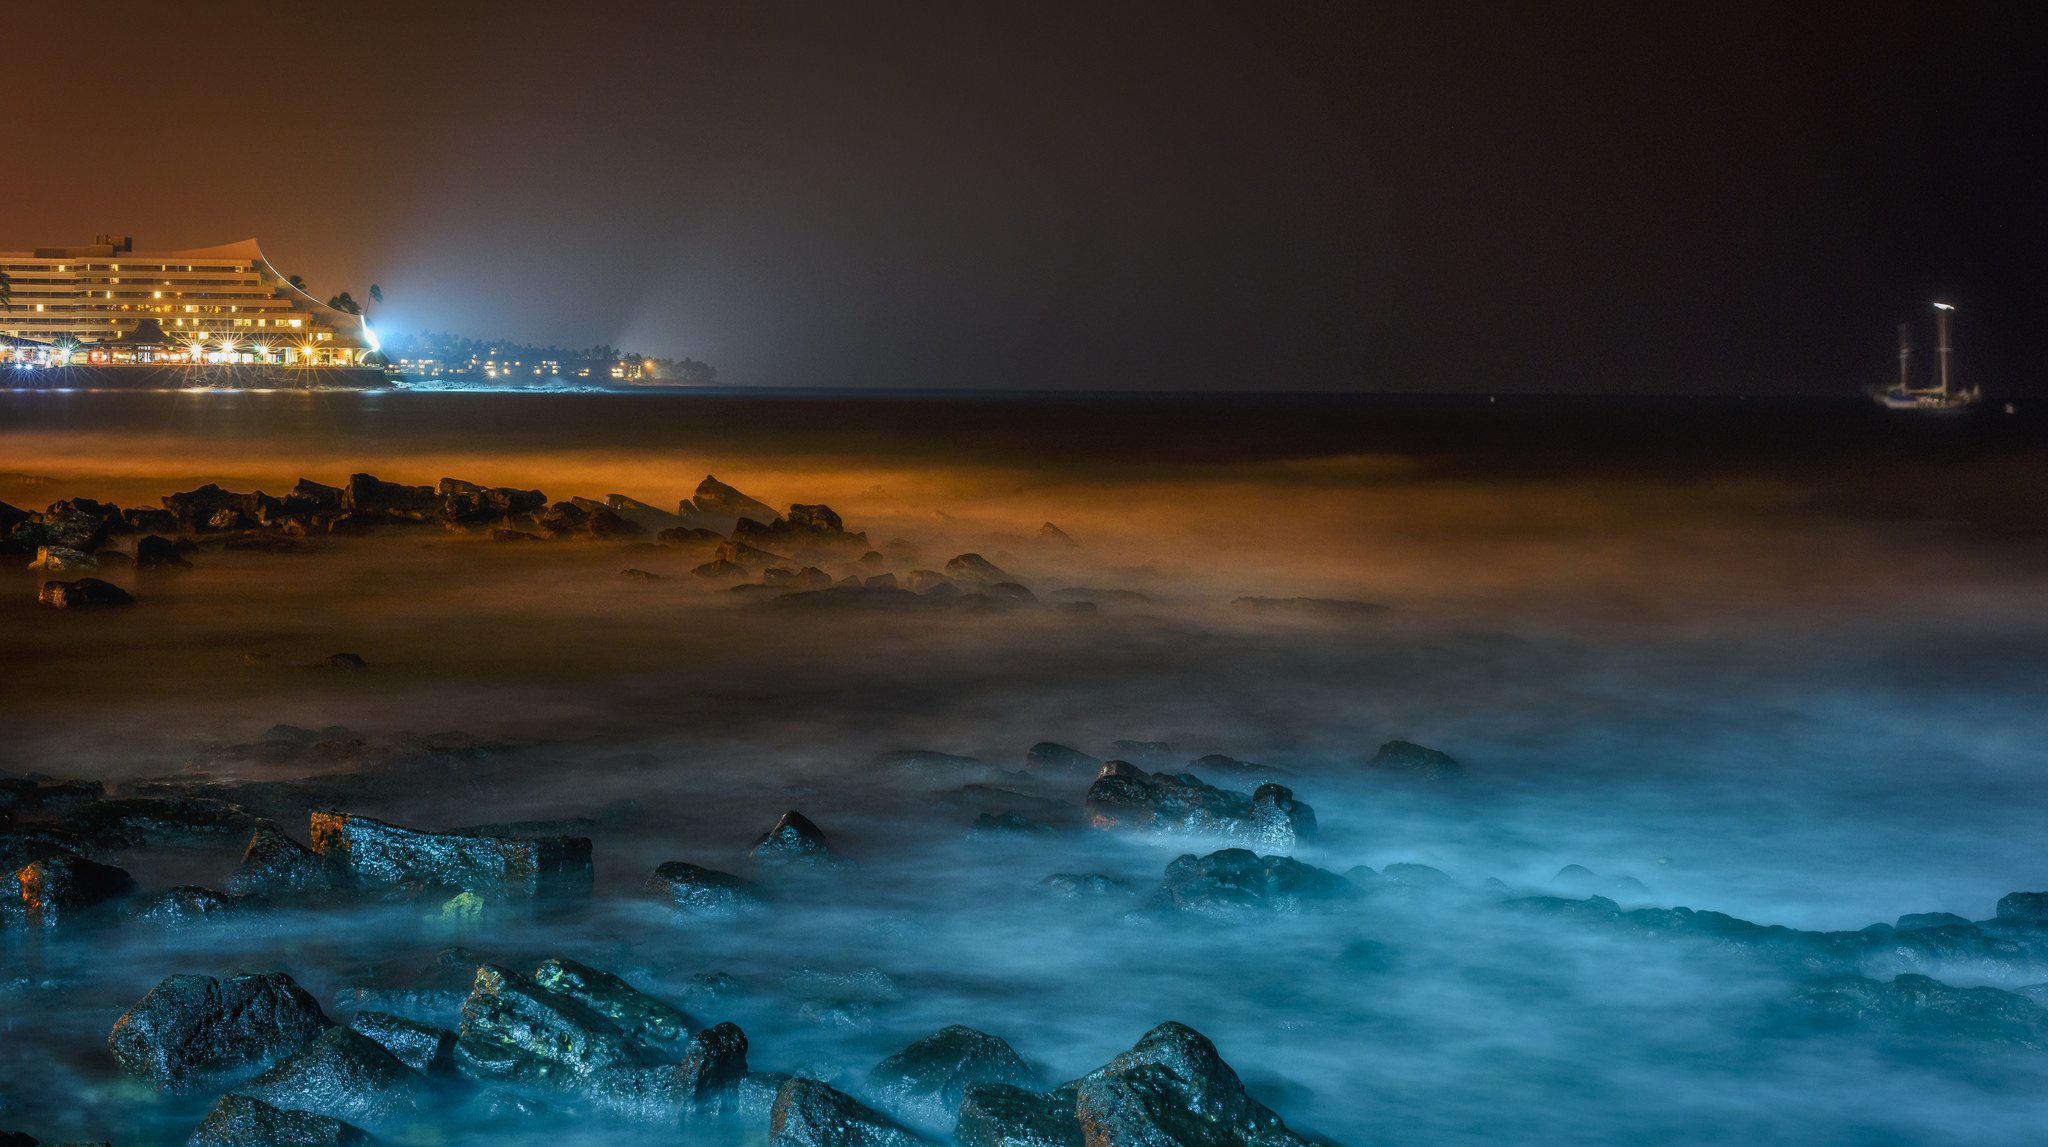 The Special Nature of Night Photography